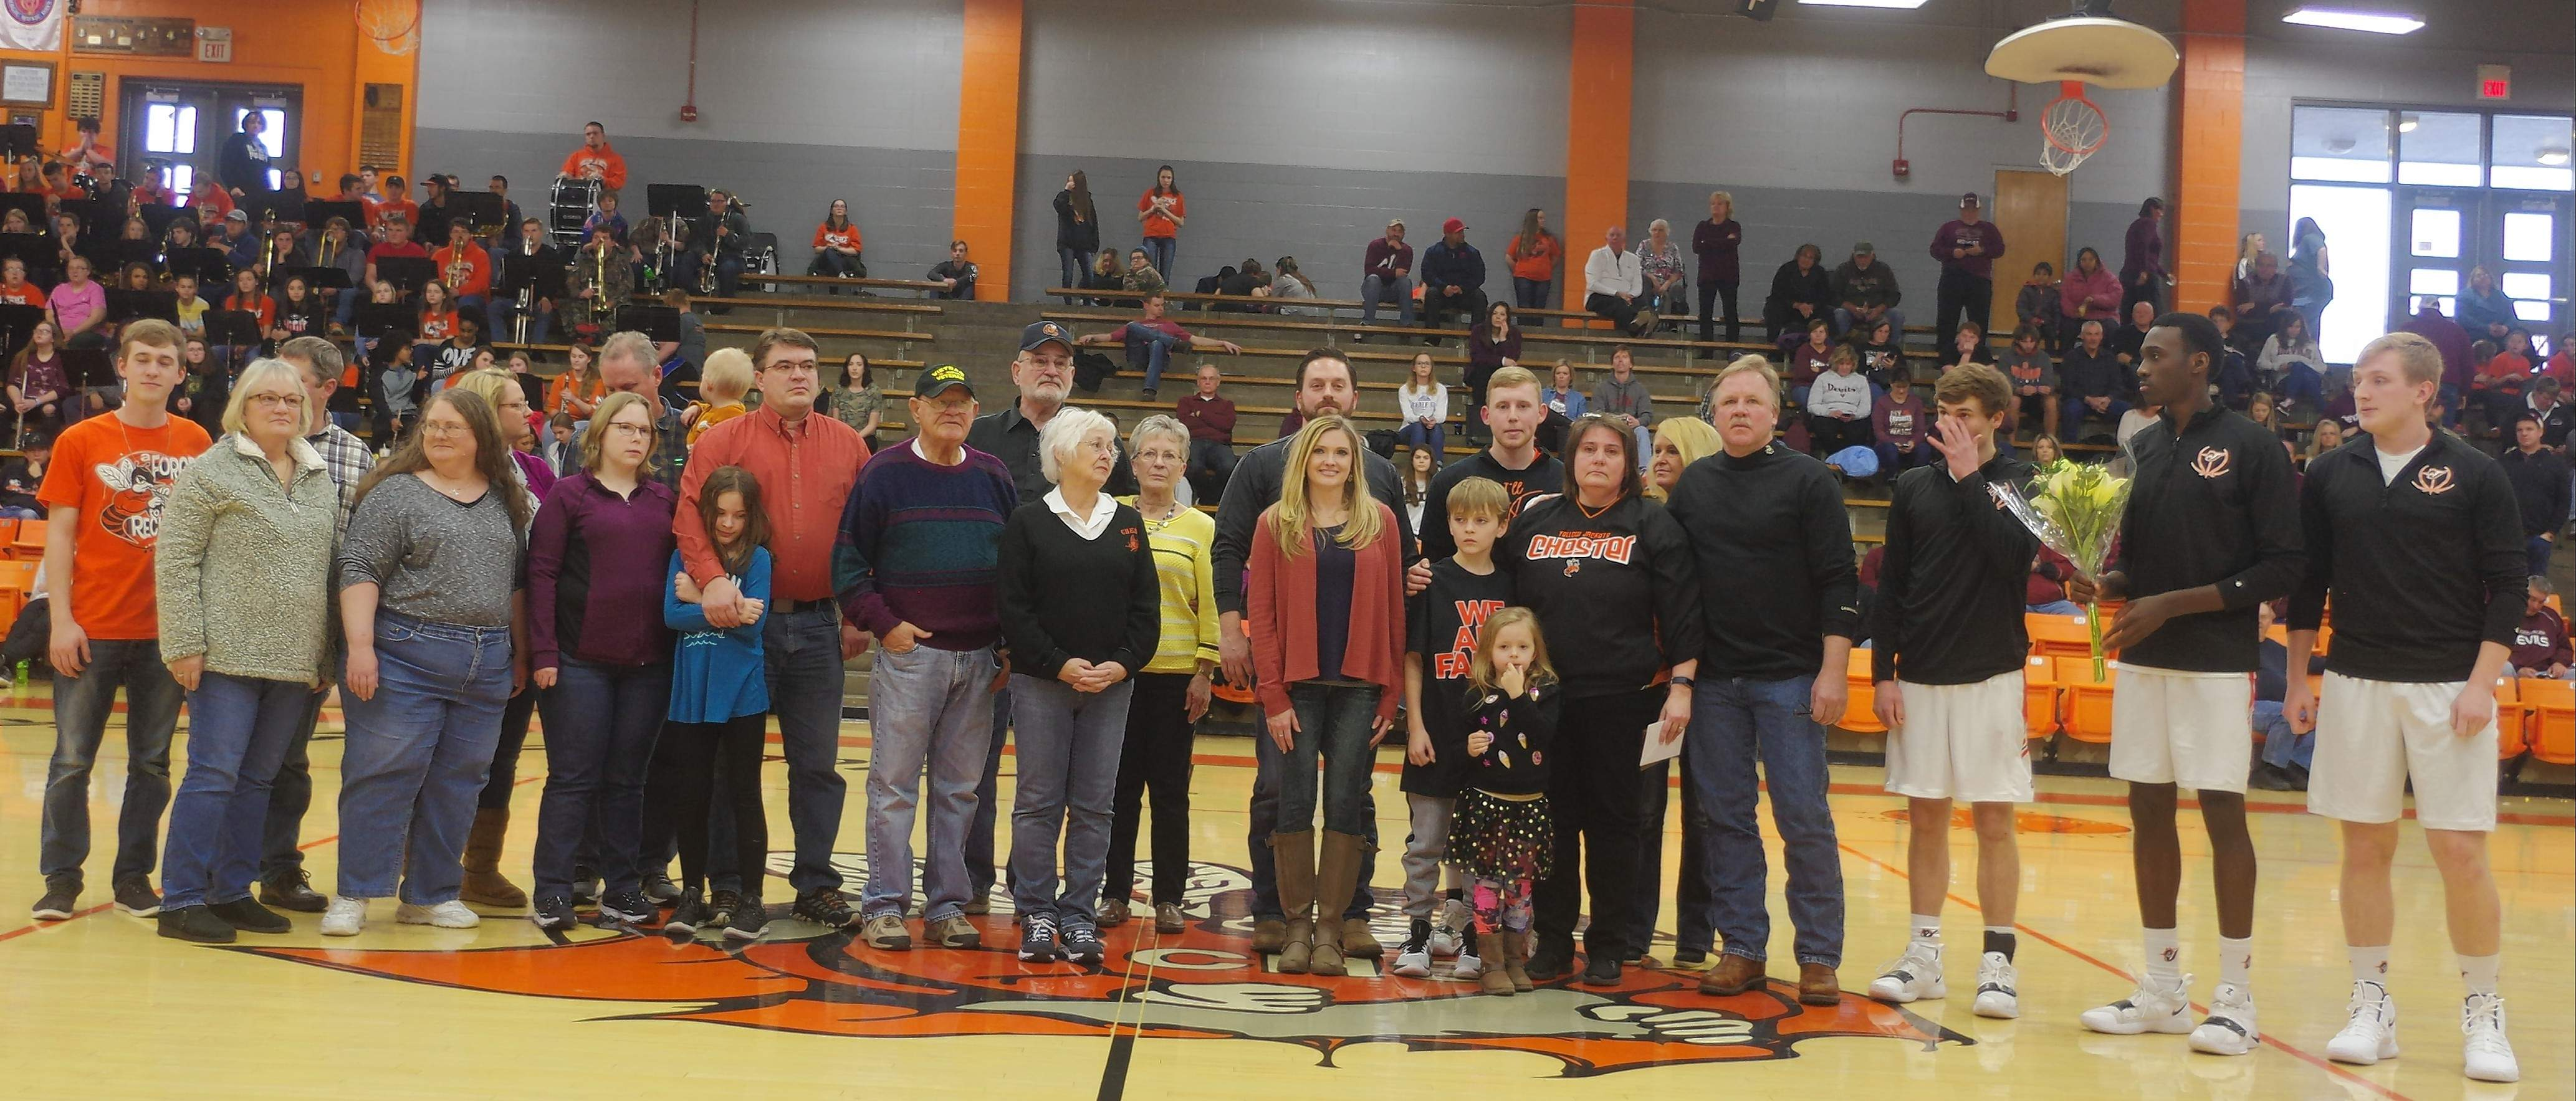 Players Keith Kiner III, Drake Bollman and Colin Wingerter, far right, present the Link family with a plaque of appreciation.